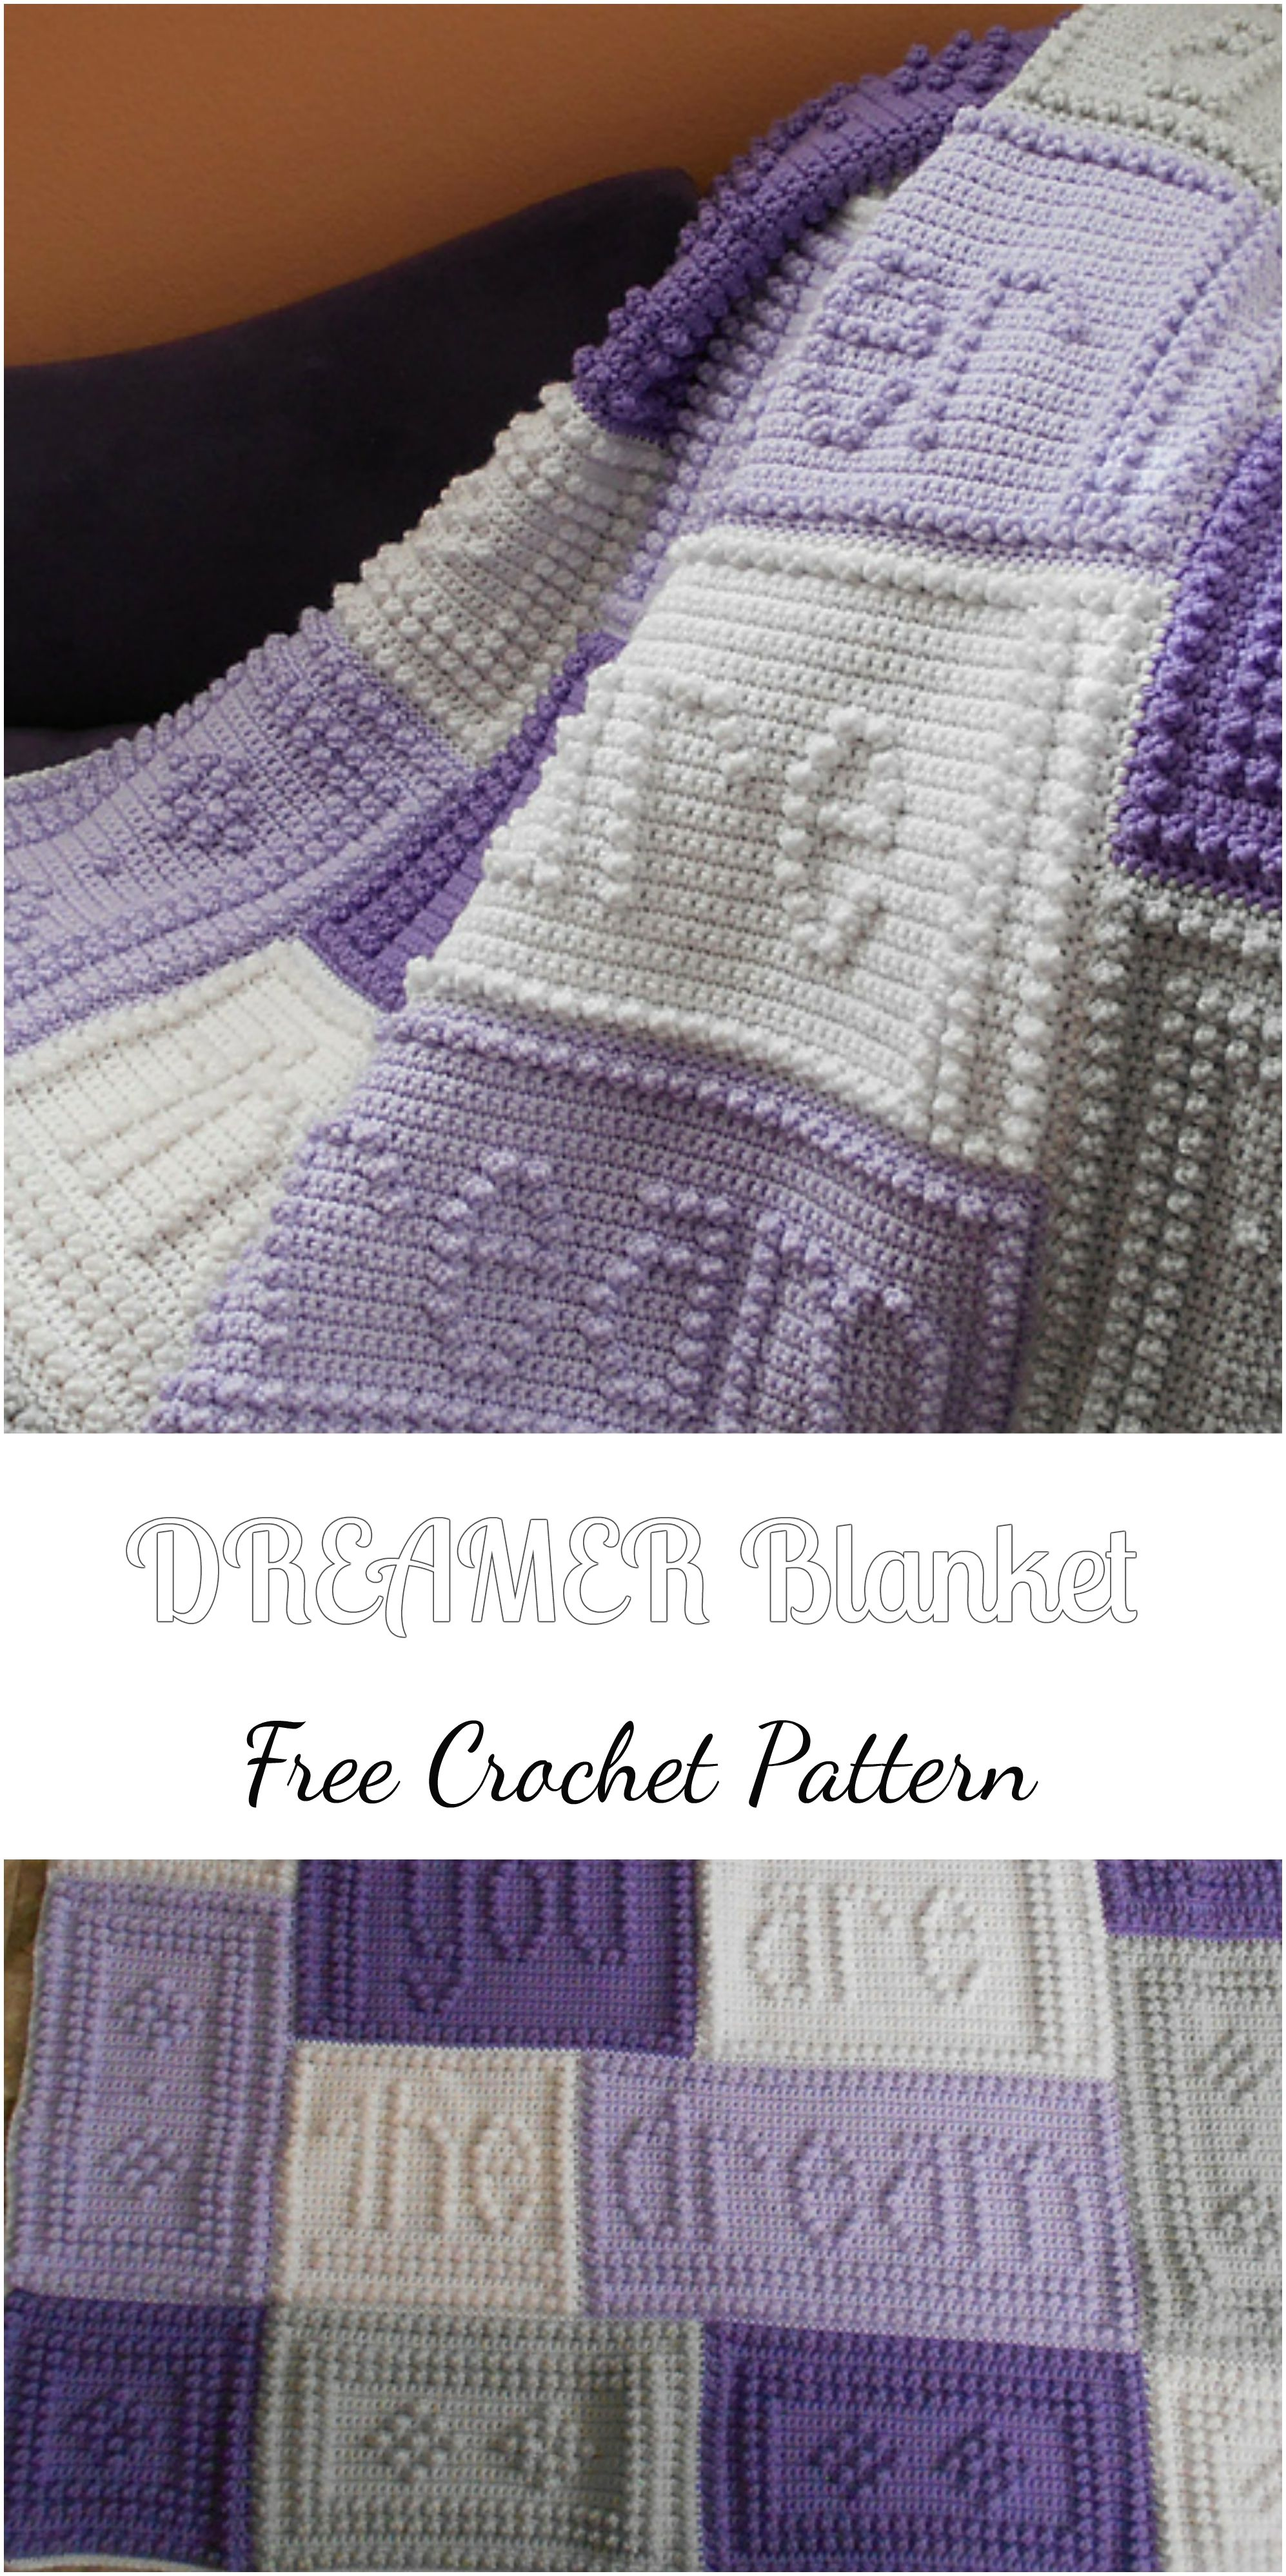 Dreamer crochet blanket free pattern crocheting blankets dreamer crochet blanket free pattern crocheting blankets crochetpatterns bankloansurffo Image collections